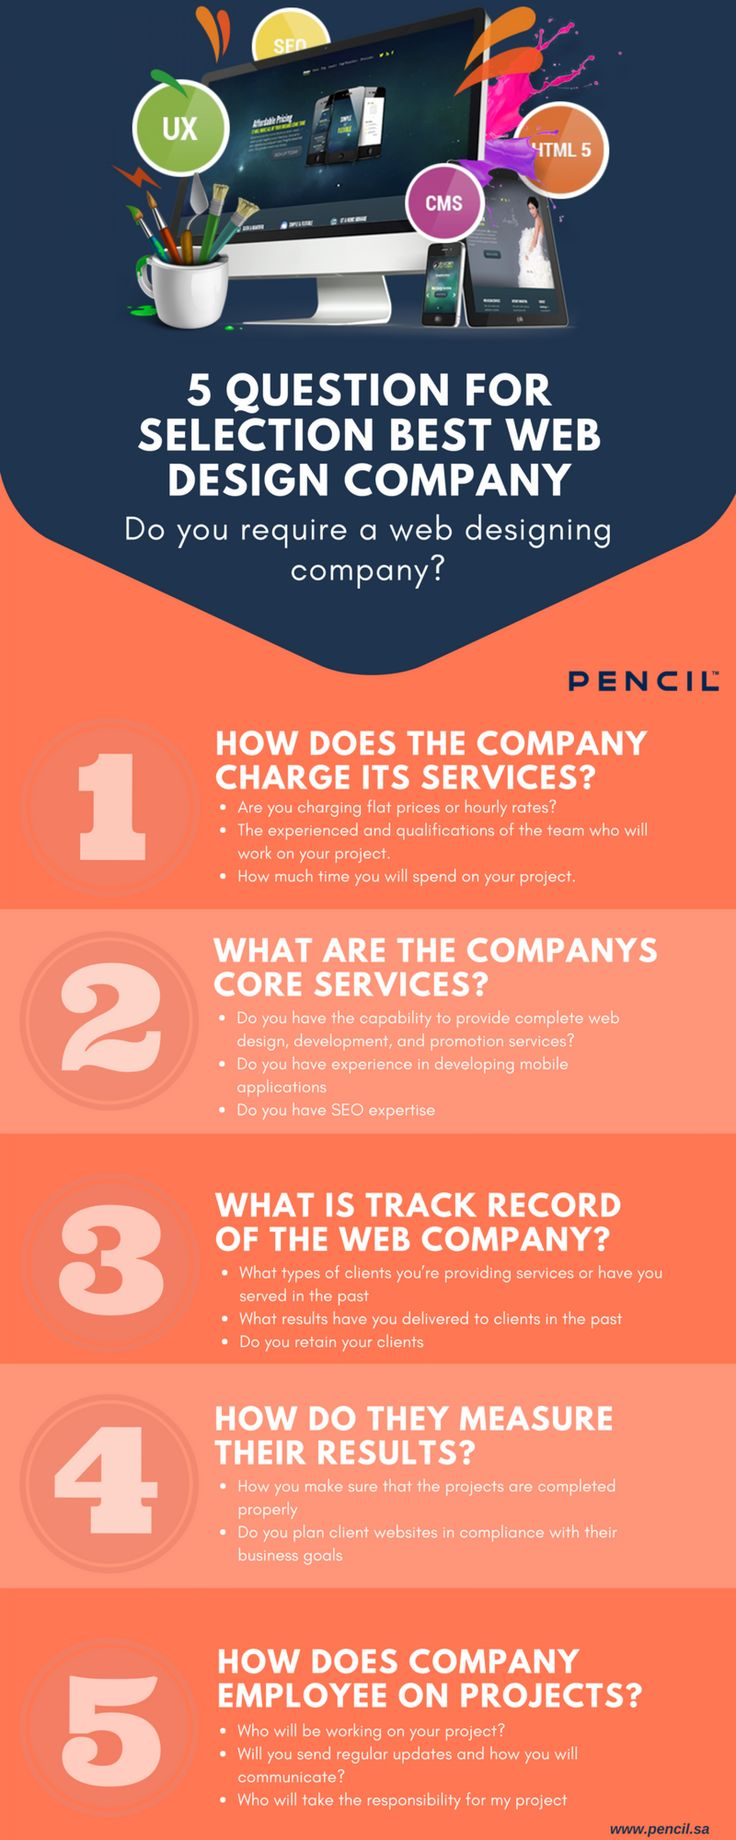 sk these five questions before hiring any web design company for your business website. These question has been included all accessory things for good looking website